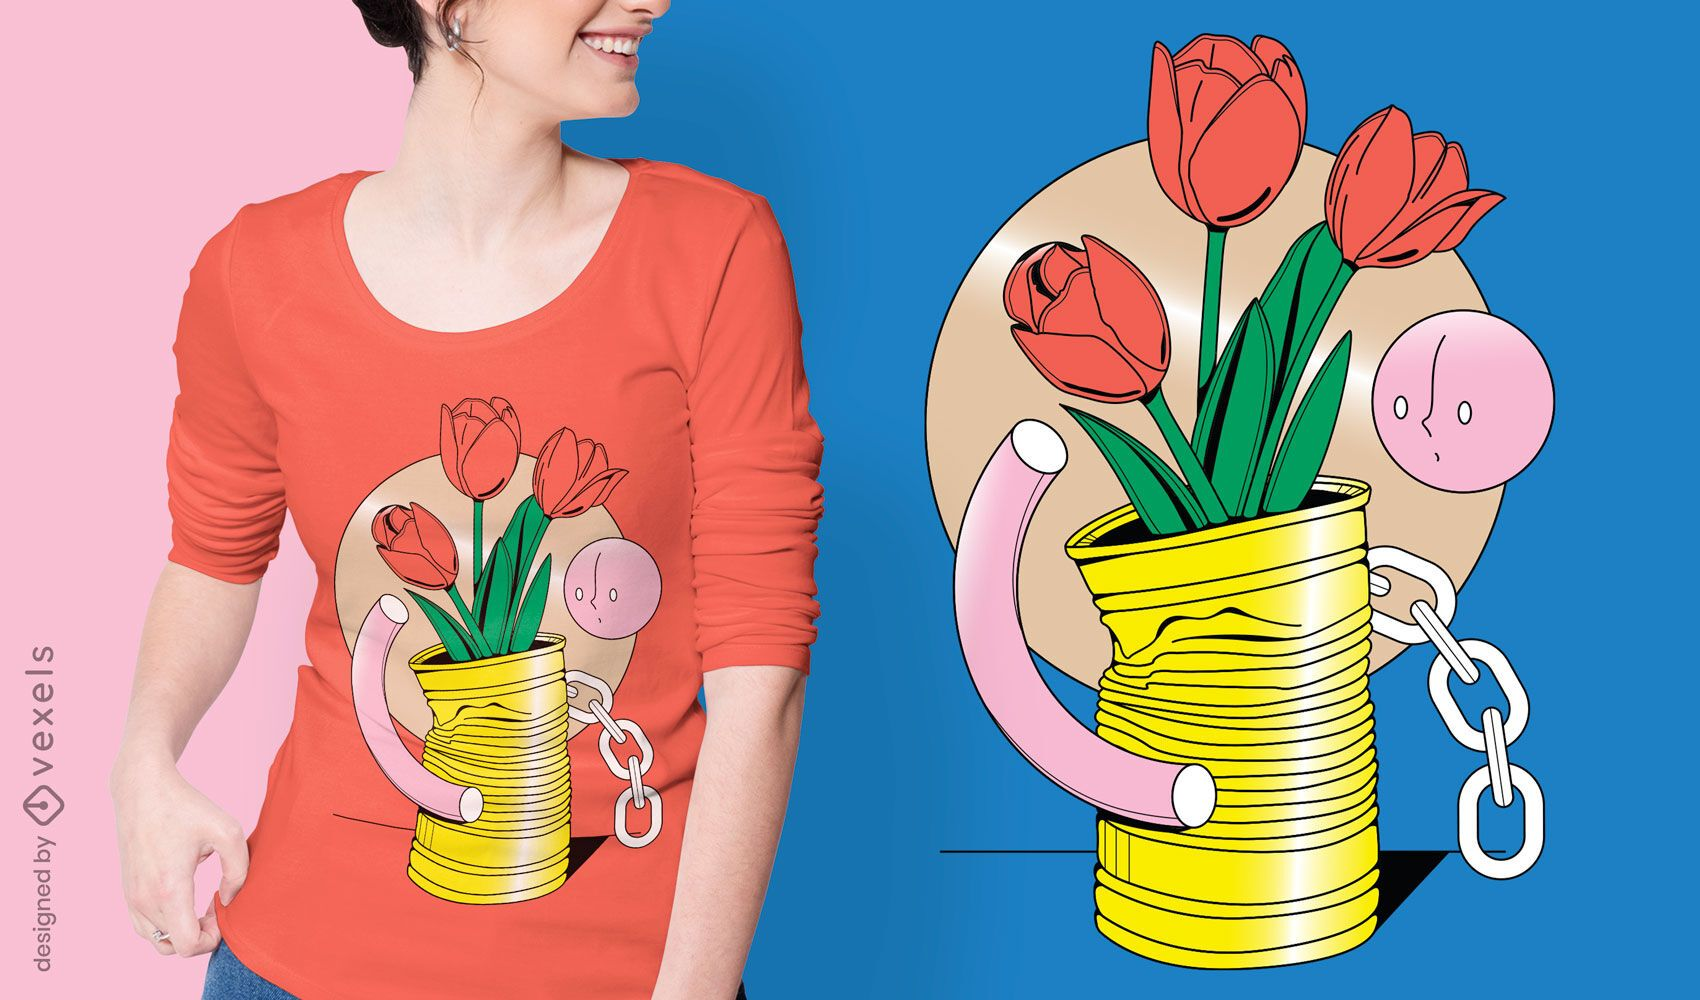 Abstract flowers can t-shirt design